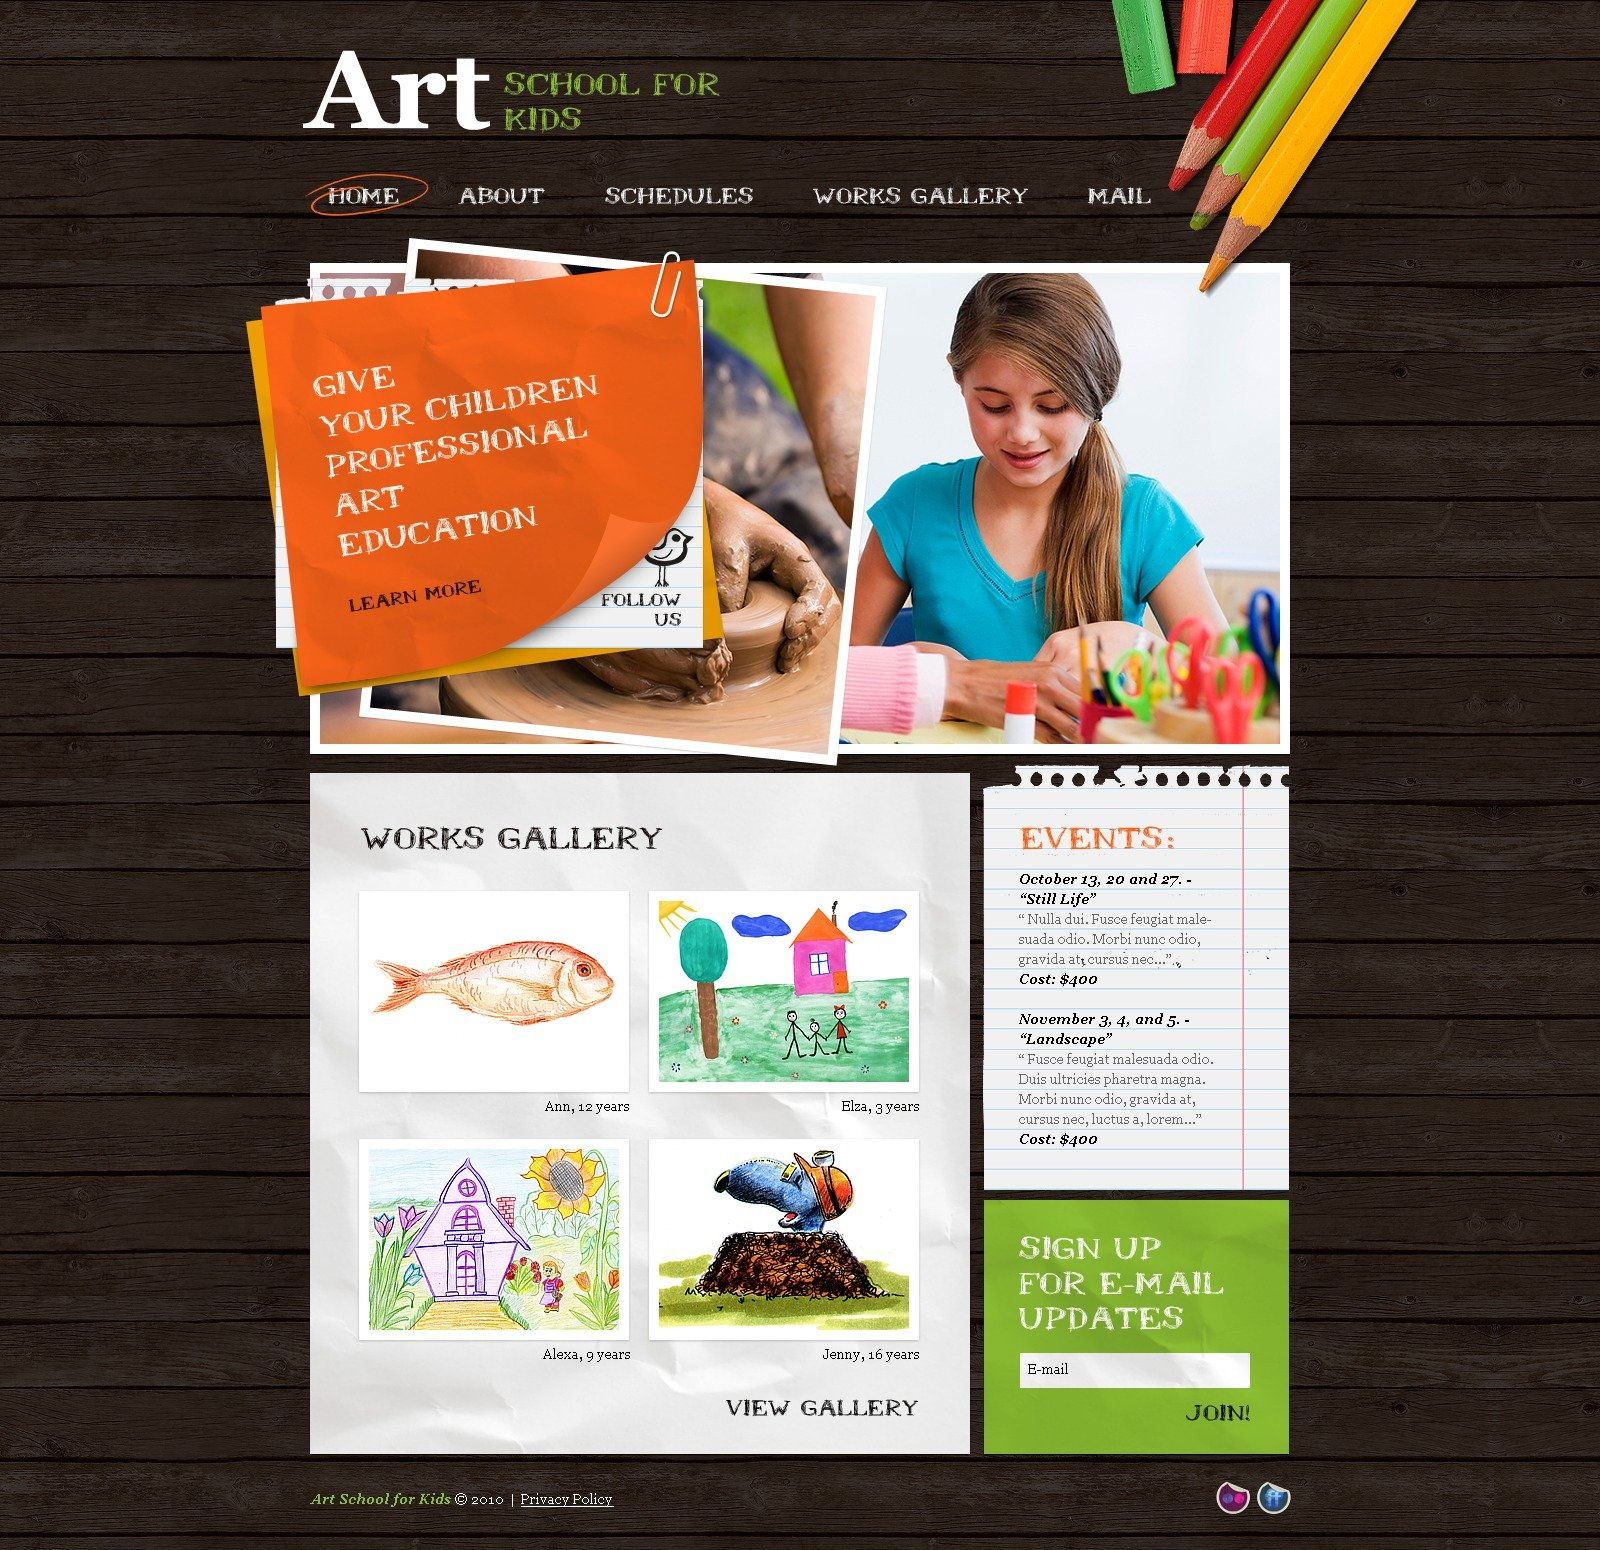 The School Art PSD Design 54505, one of the best PSD templates of its kind (art & photography, education, most popular, wide), also known as school art PSD template, paint PSD template, brush PSD template, painter PSD template, painting PSD template, artist PSD template, works PSD template, program PSD template, learn PSD template, teach PSD template, tuition PSD template, child PSD template, children PSD template, kids PSD template, class and related with school art, paint, brush, painter, painting, artist, works, program, learn, teach, tuition, child, children, kids, class, etc.